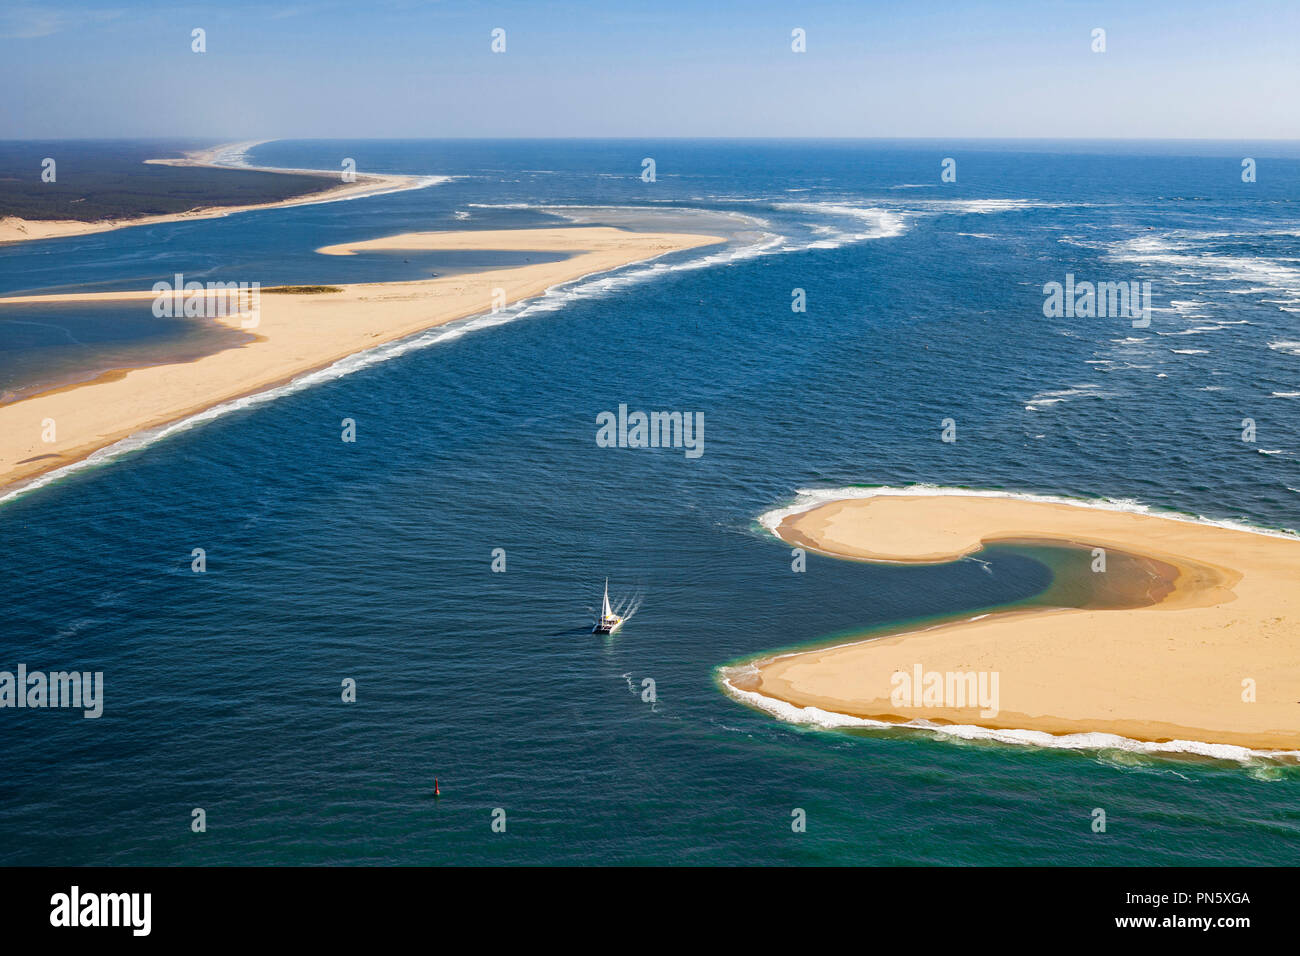 Aerial View Of The Banc Darguin Sandbank In The Arcachon Bay Not